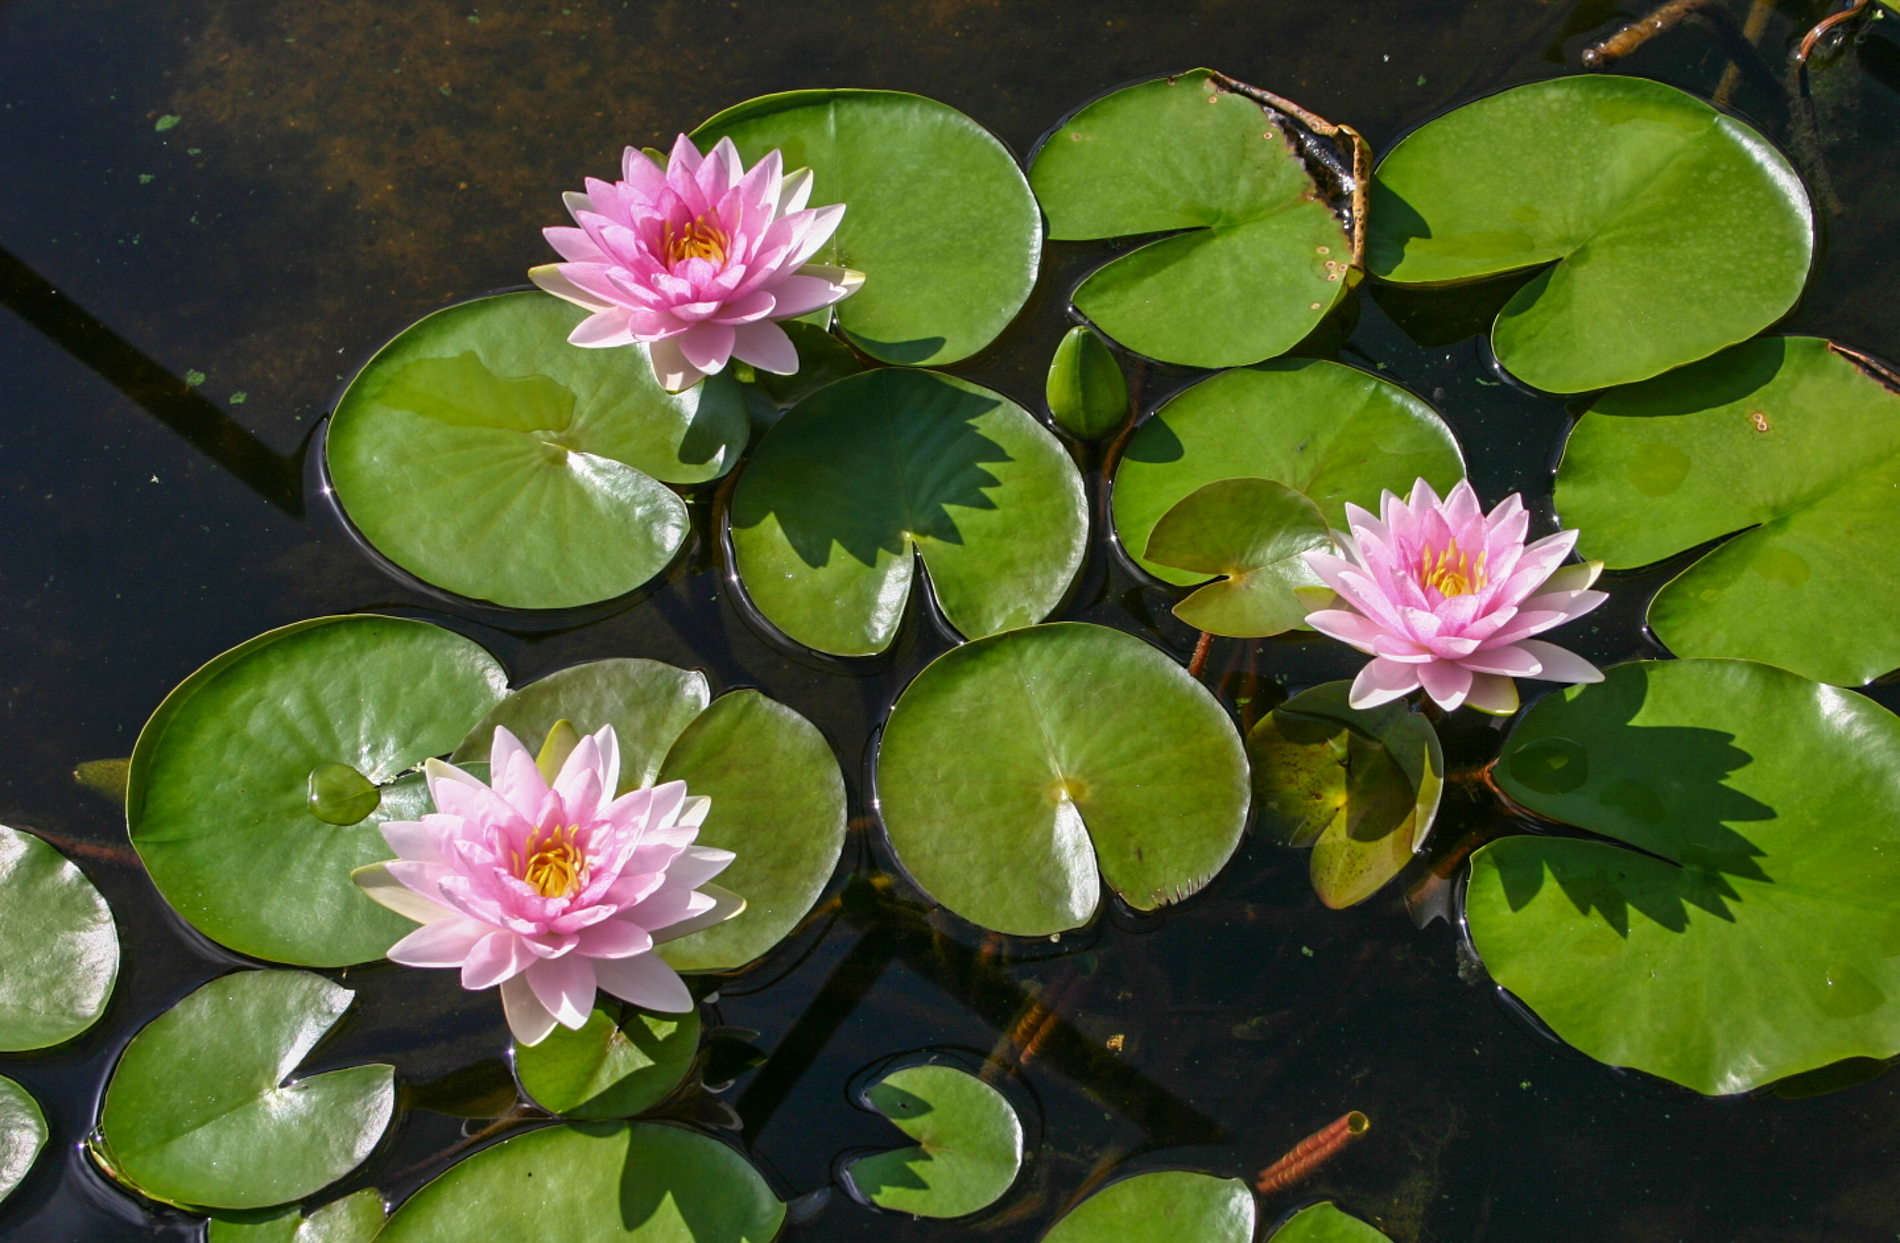 Nymphaea 'Mme. Wilfron Gonnere' (1 of 3).jpg